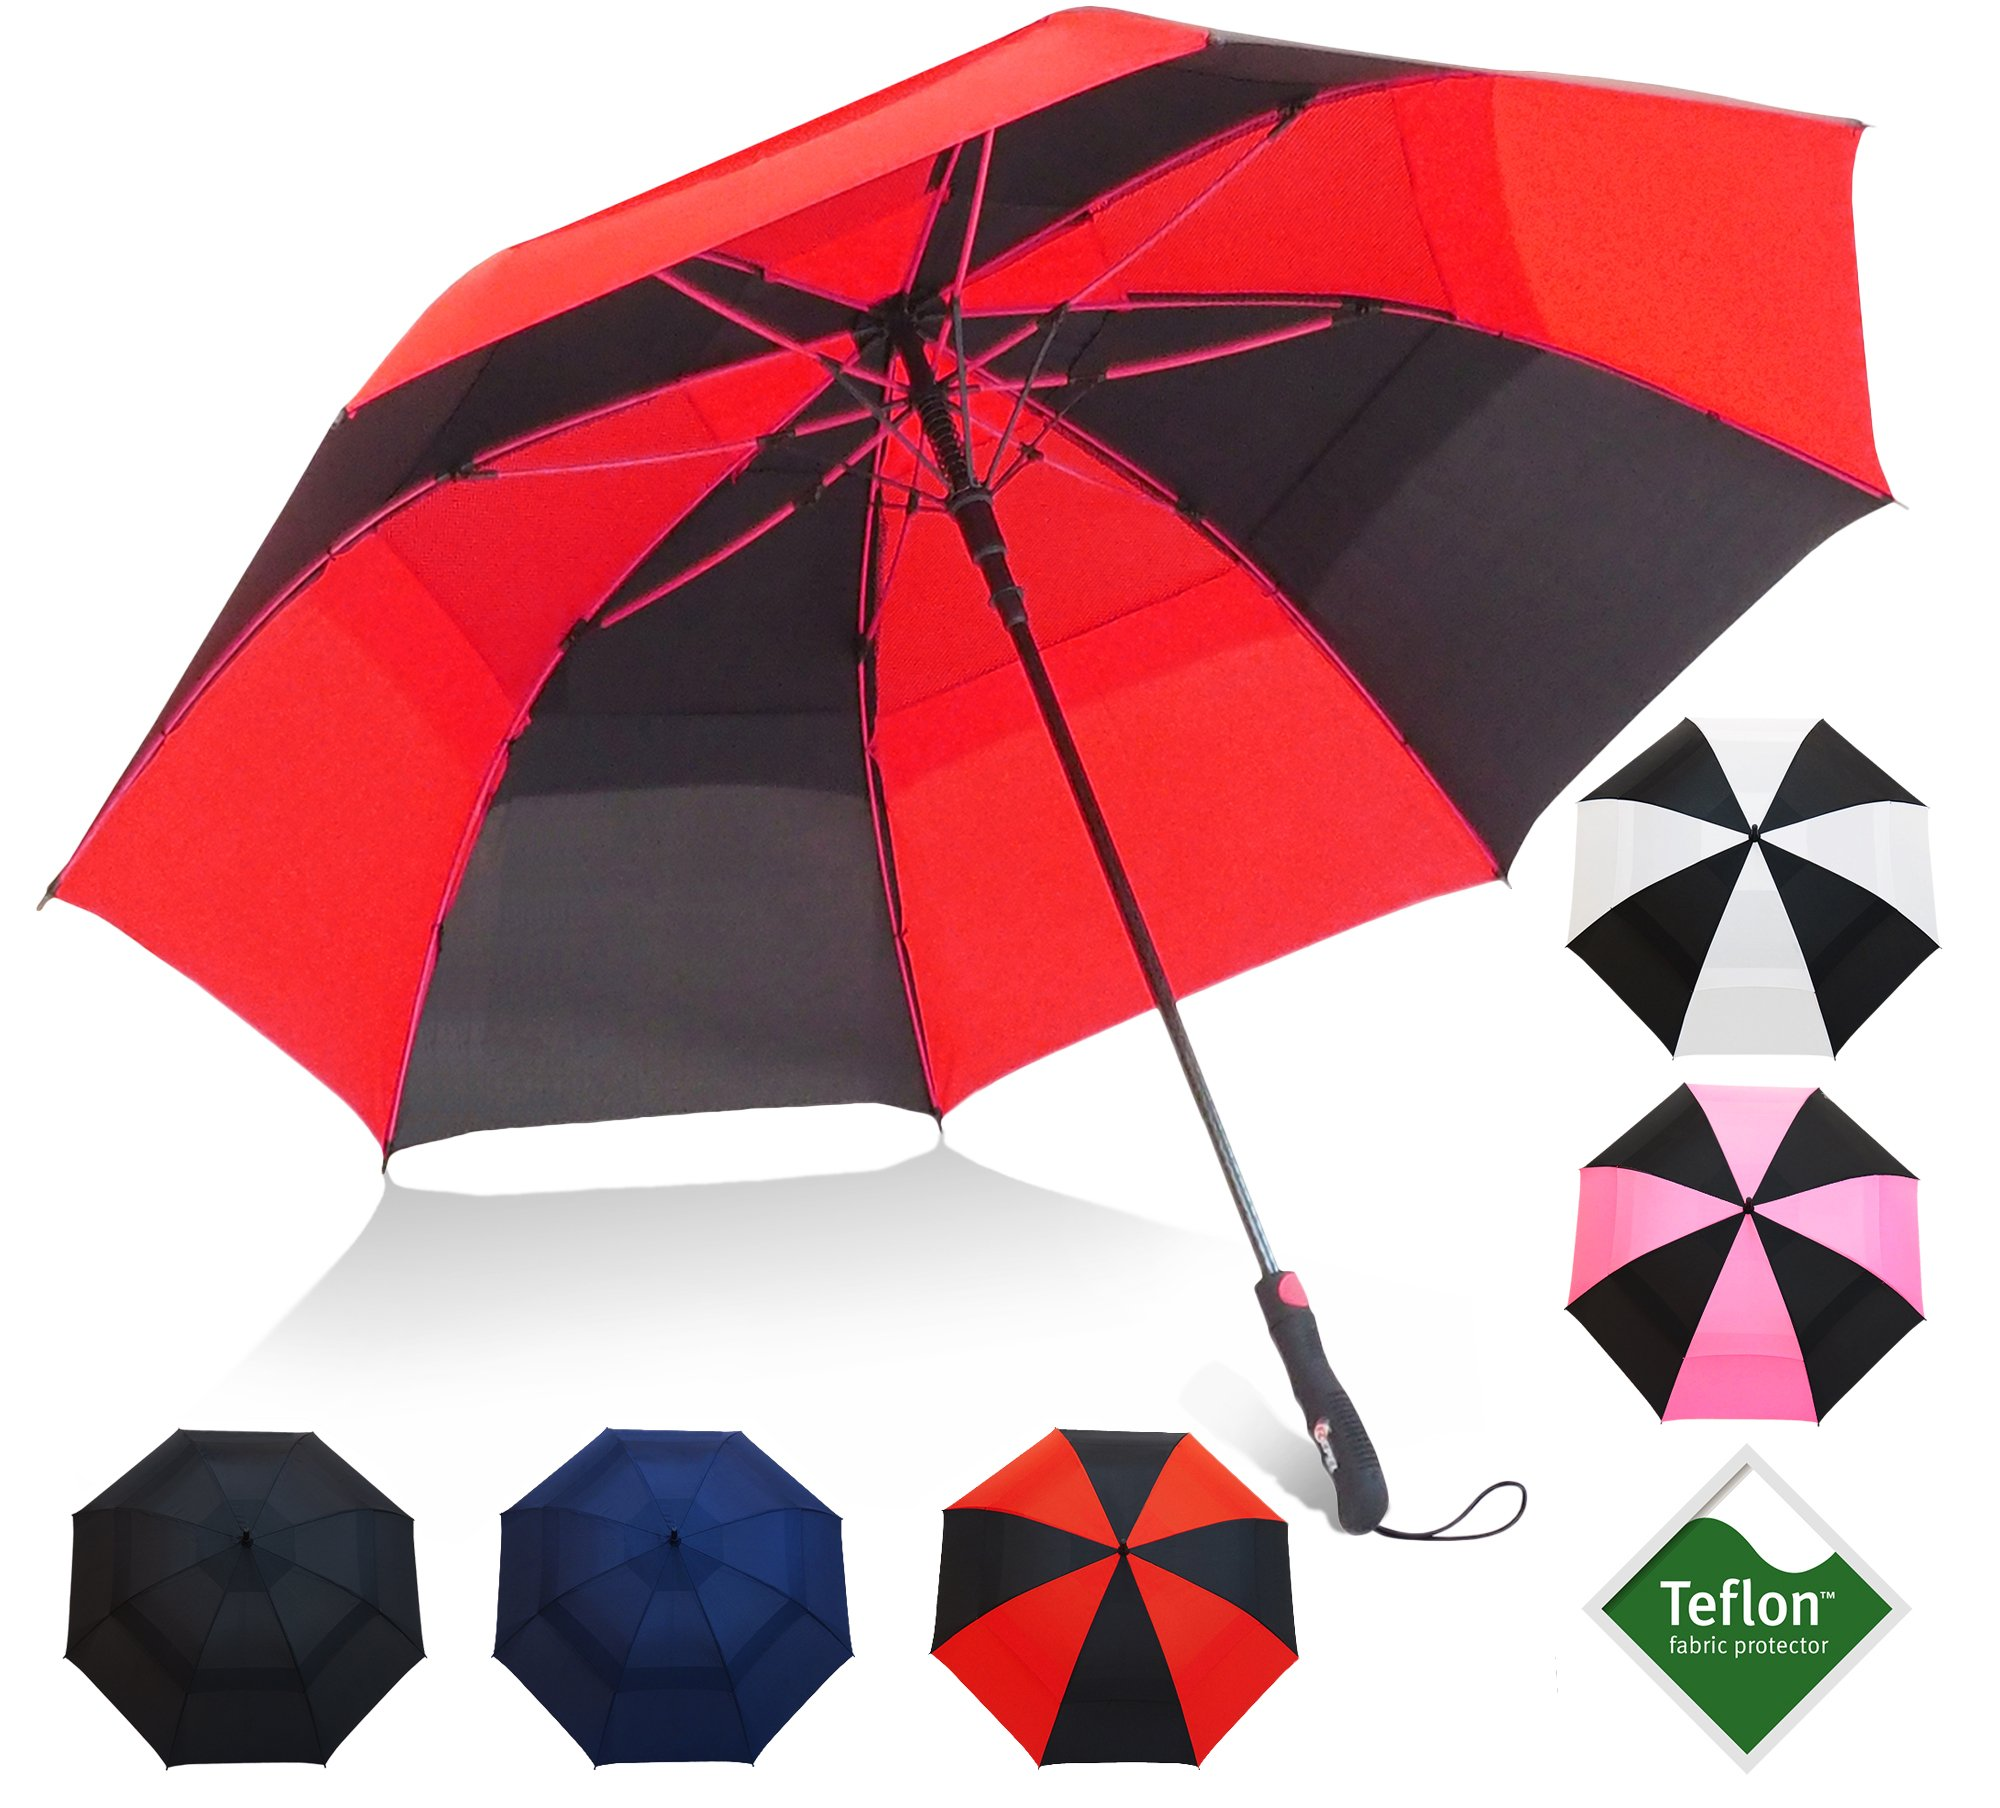 Golf Umbrella by Repel with Triple Layered Reinforced Fiberglass Ribs Adorned in Red Paint, 60'' Vented Double Canopy with Teflon Coating, Auto Open (Black/Sunset Red)